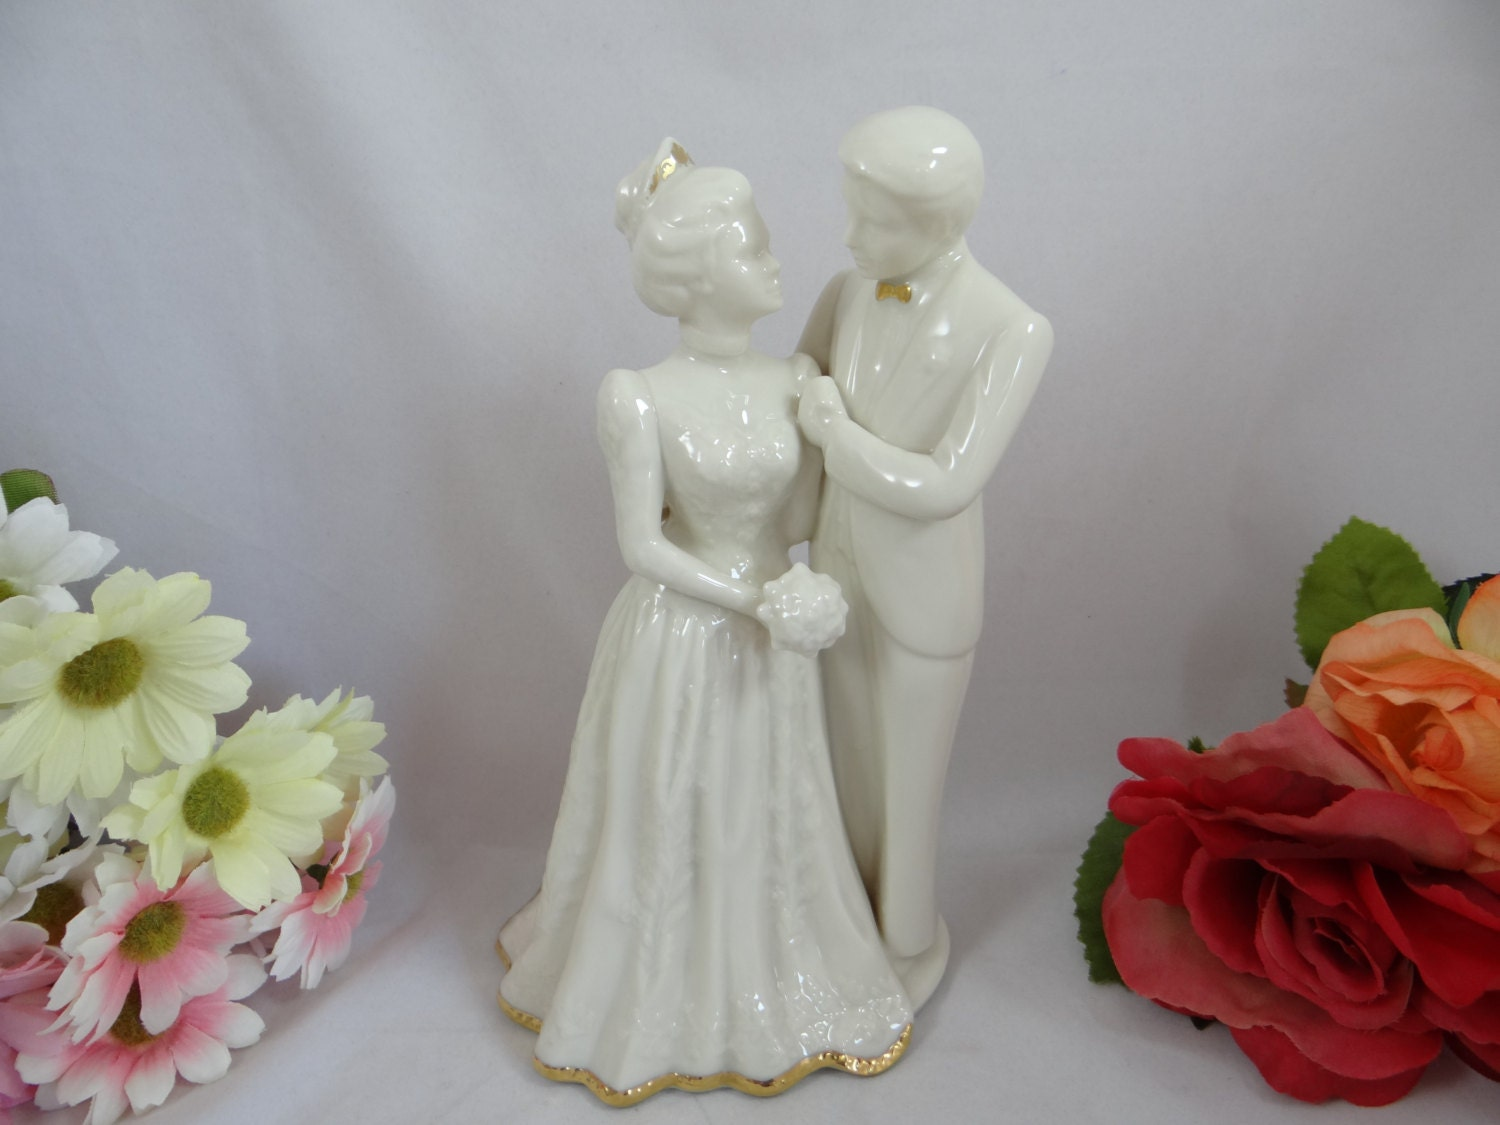 Lenox Wedding Gifts: Lenox Wedding Promises Bride And Groom Figurine Wedding Topper